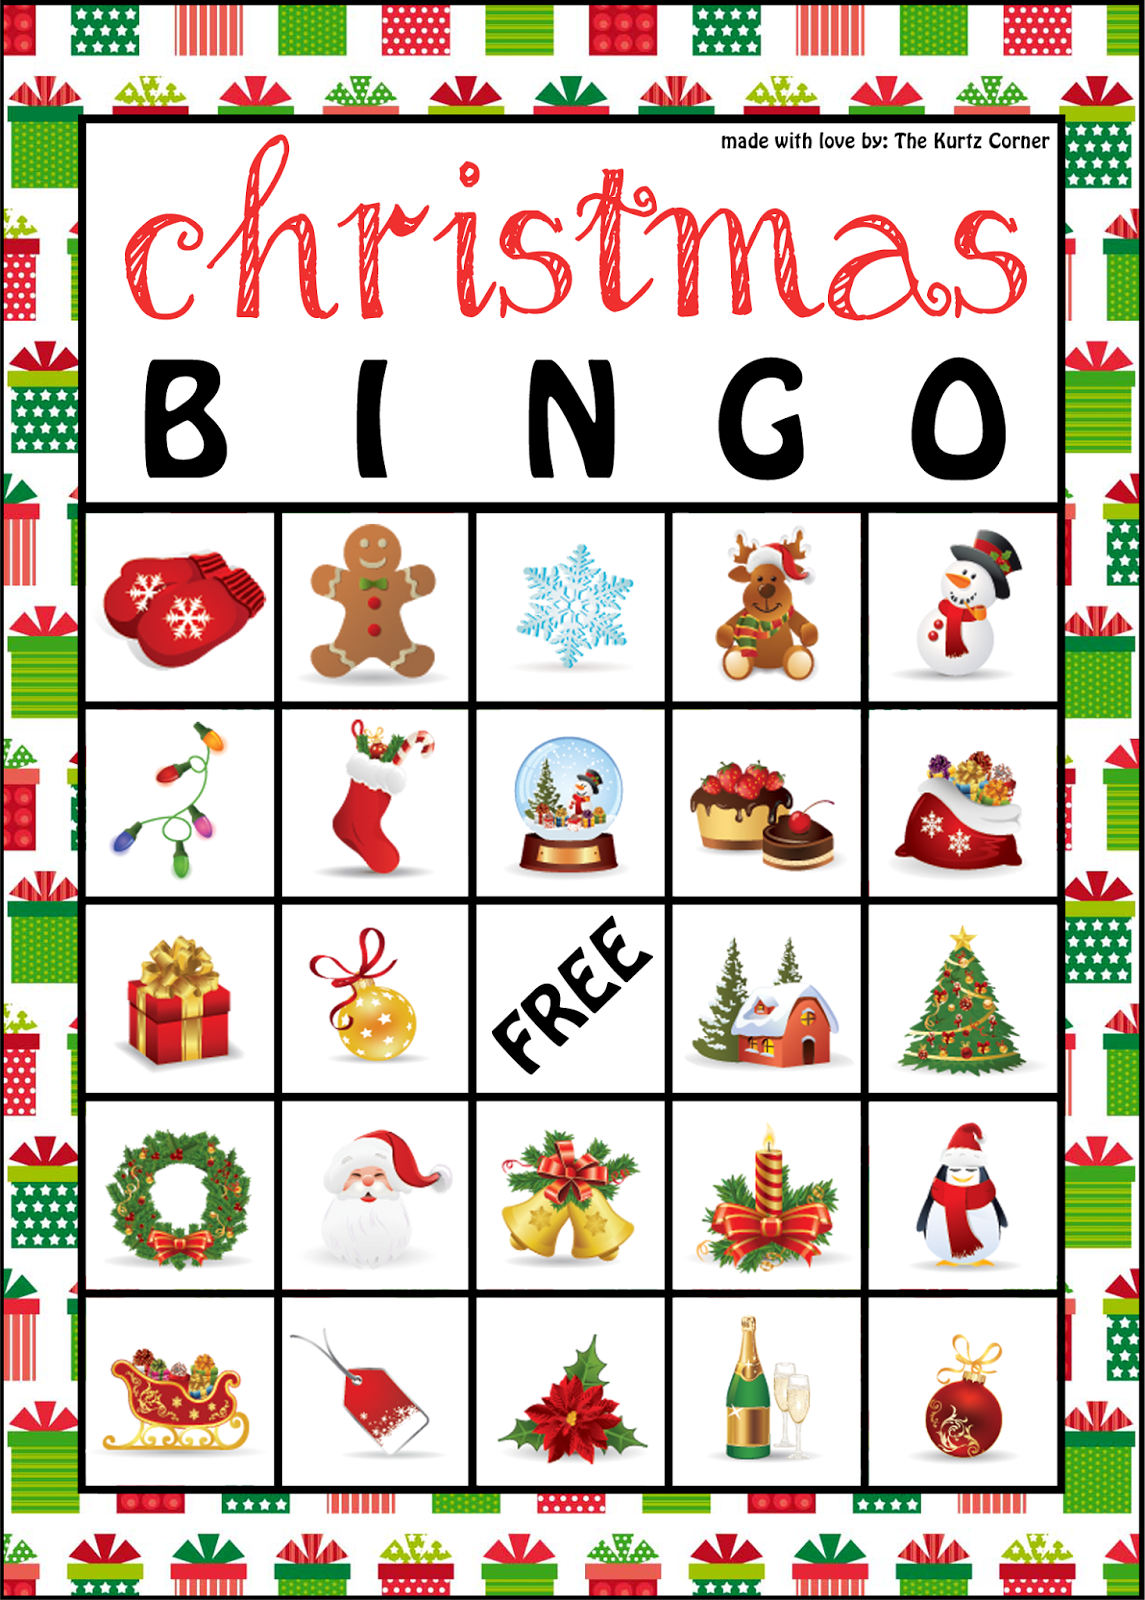 picture relating to Christmas Bingo Card Printable named The Kurtz Corner: Absolutely free Printable Xmas BINGO Playing cards